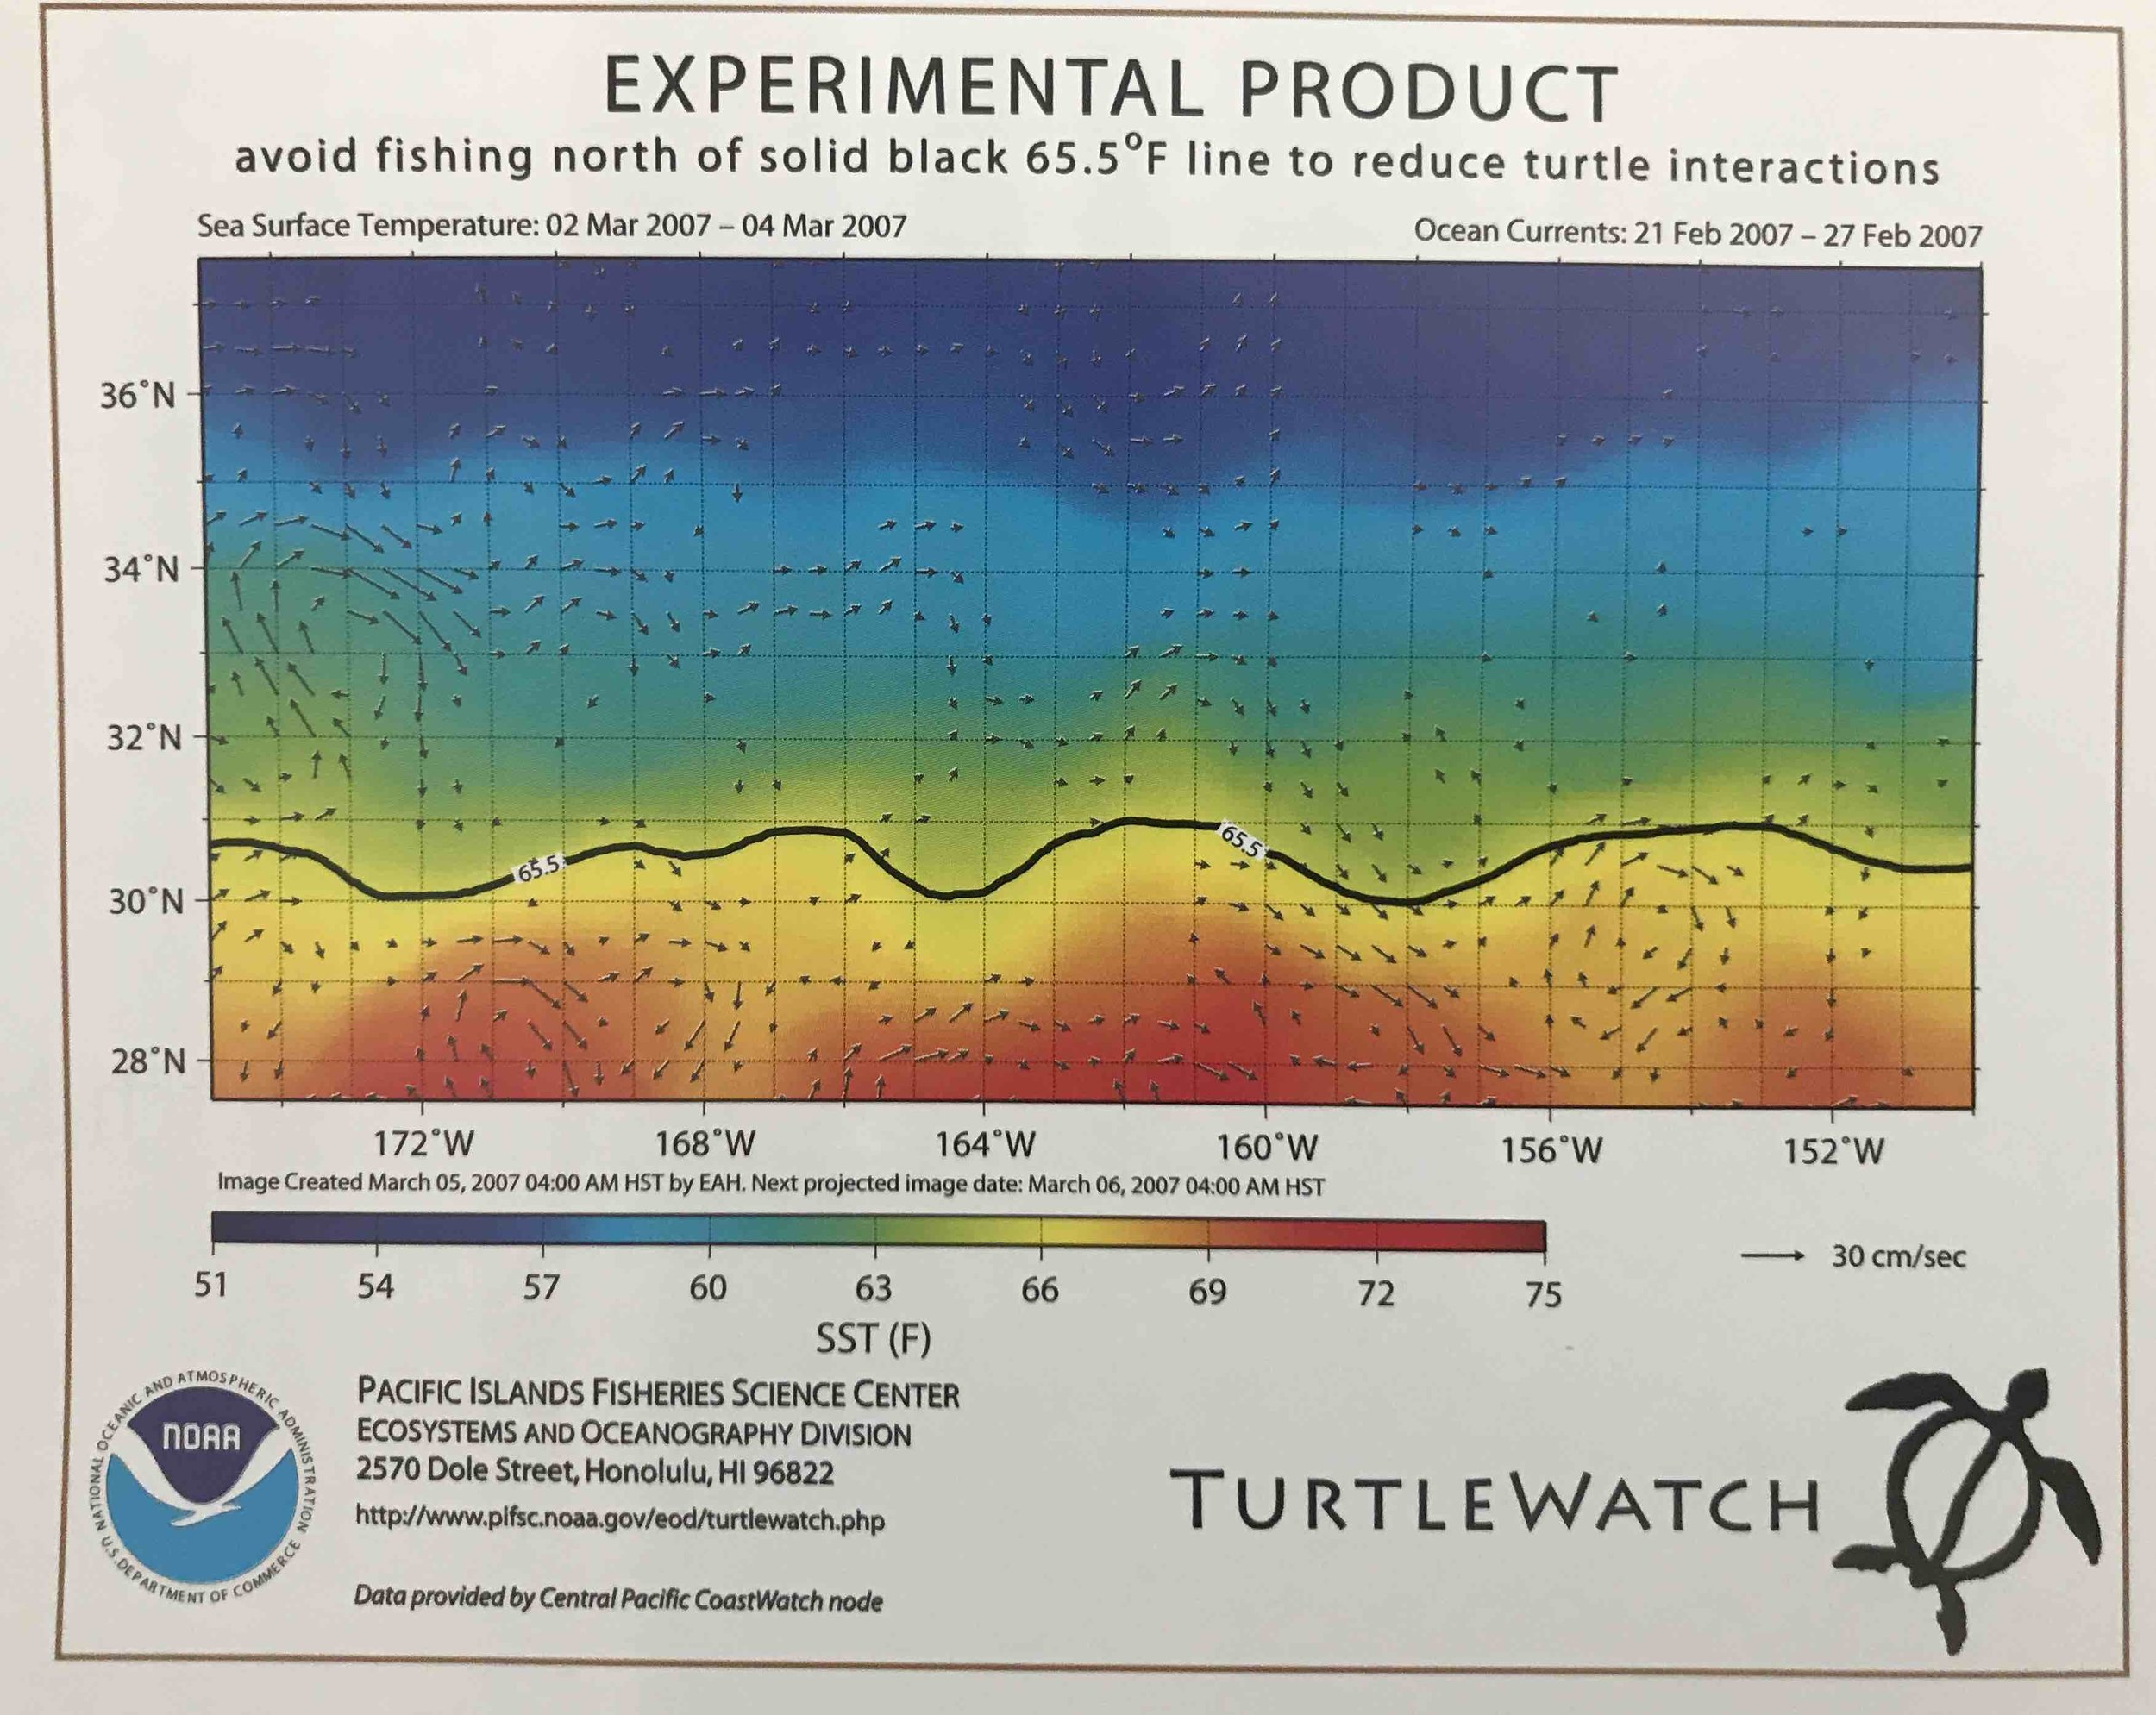 TurtleWatch  uses up-to-date oceanographic information to give recommendations to longline fishers about which ares to fish if they are to avoid accidentally catching loggerheads (see the highlighted areas on the graph) © NOAA PACIFIC ISLANDS FISHERIES SCIENCE CENTER